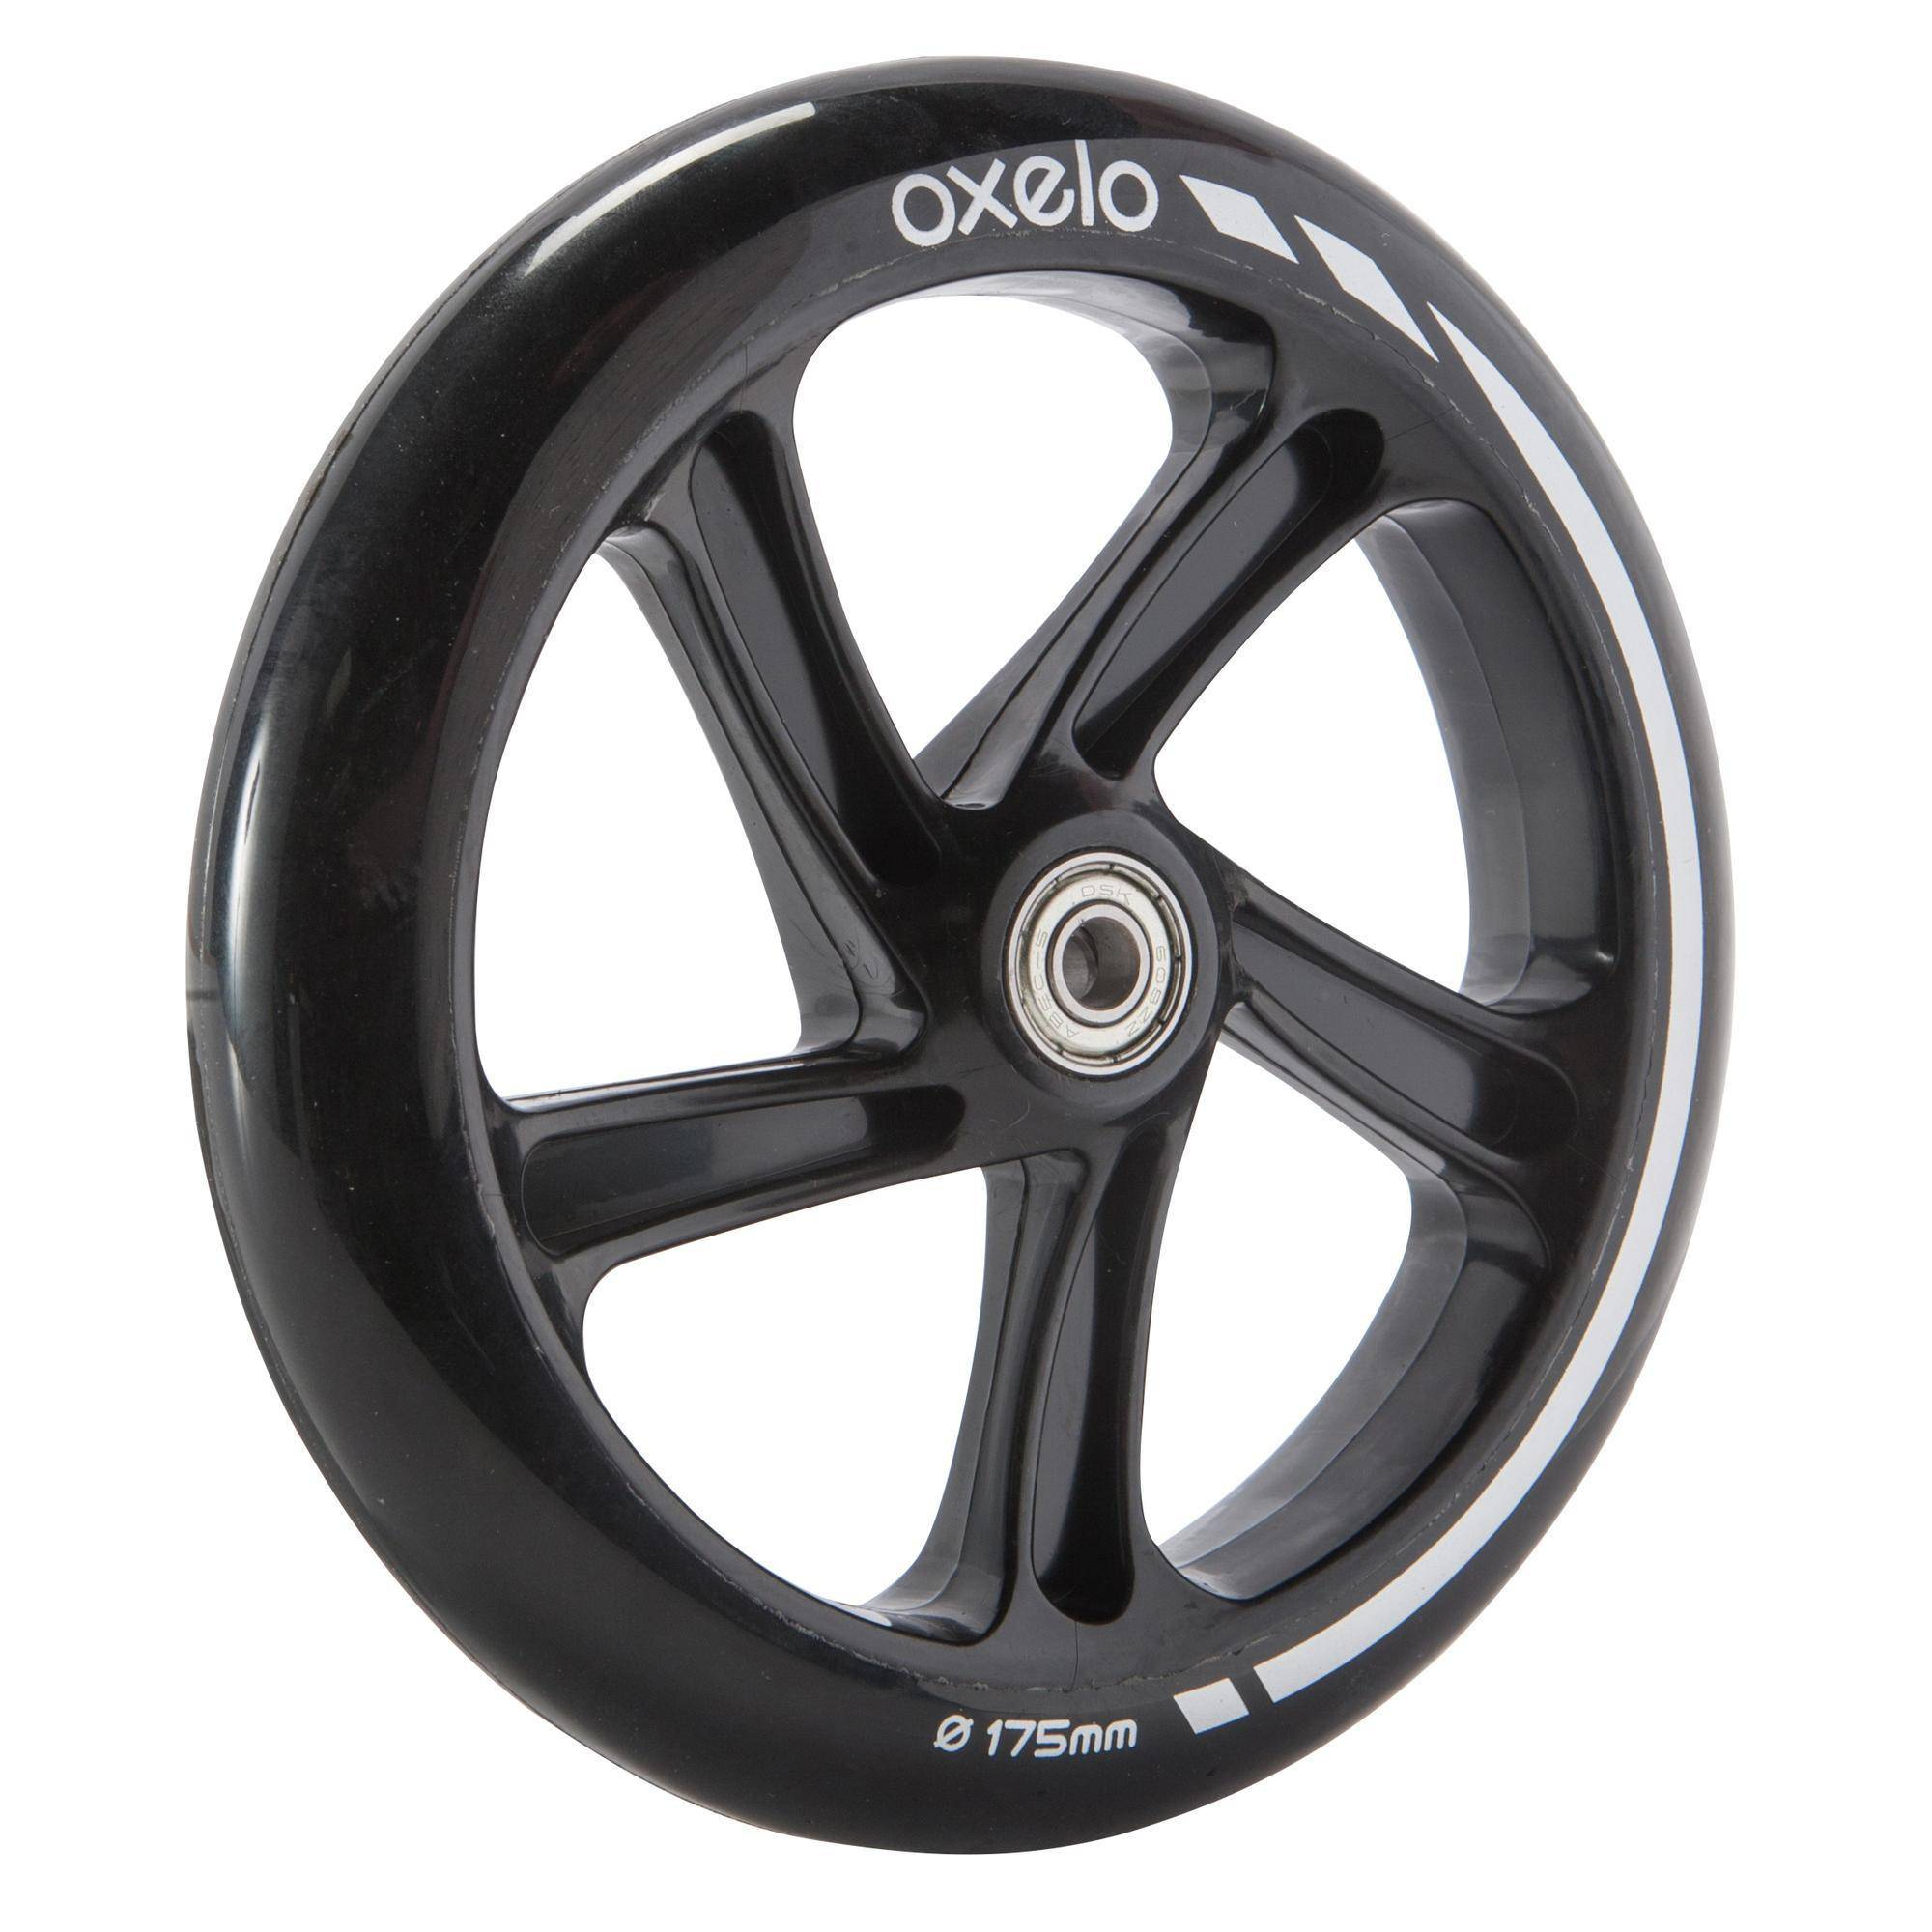 Oxelo 1 ROUE TROTTINETTE MID 7 - MID 9 - TOWN 3 (175mm) - Oxelo